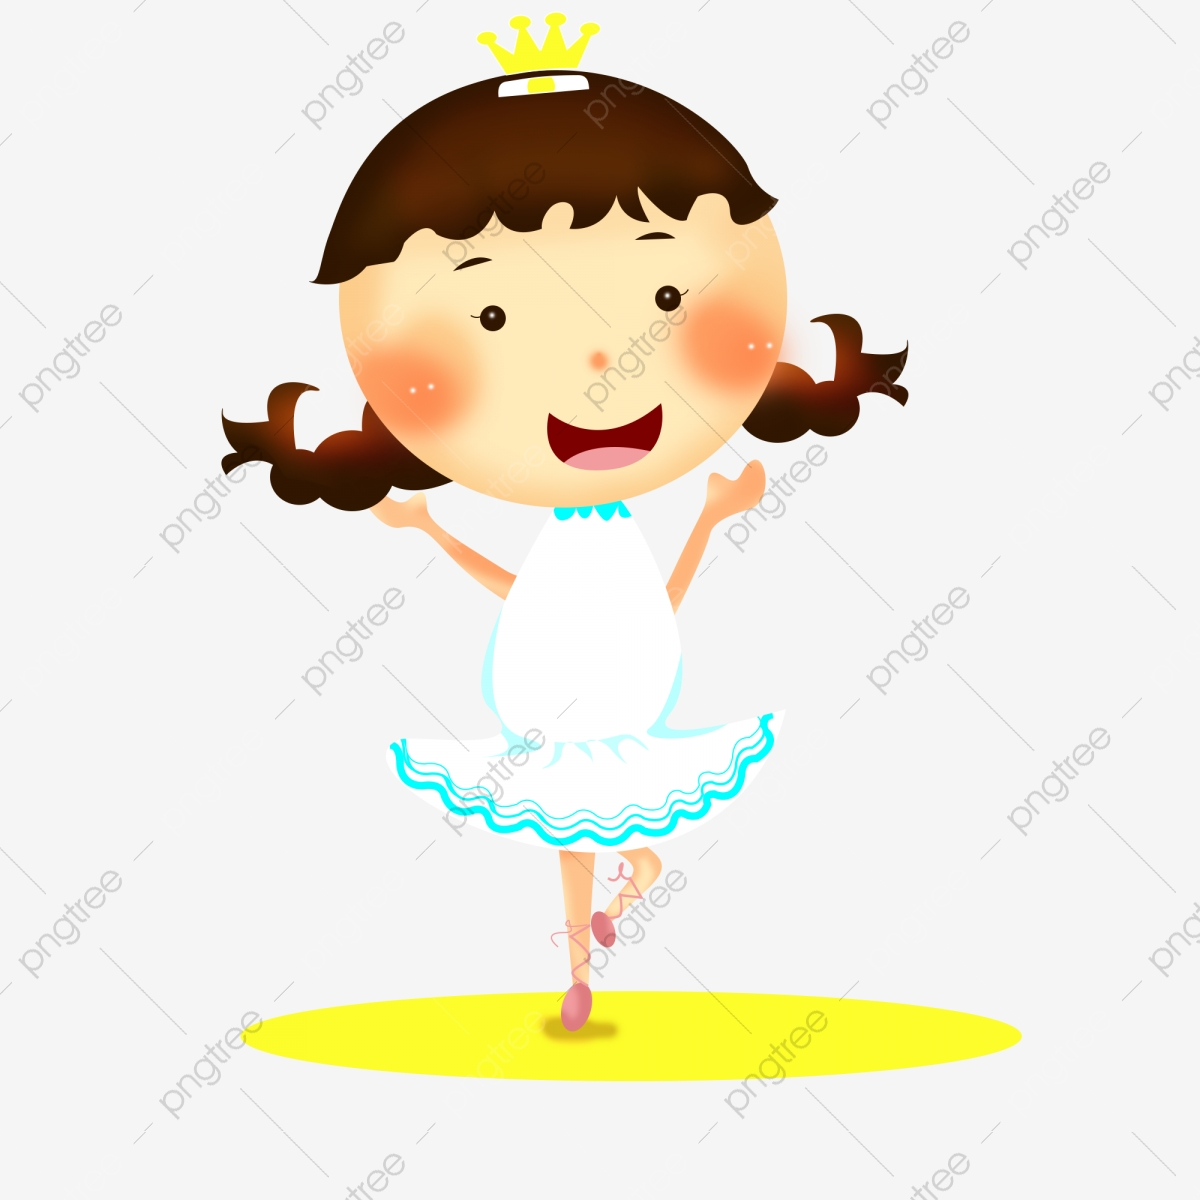 hight resolution of commercial use resource upgrade to premium plan and get license authorization upgradenow ballet girl ballet clipart